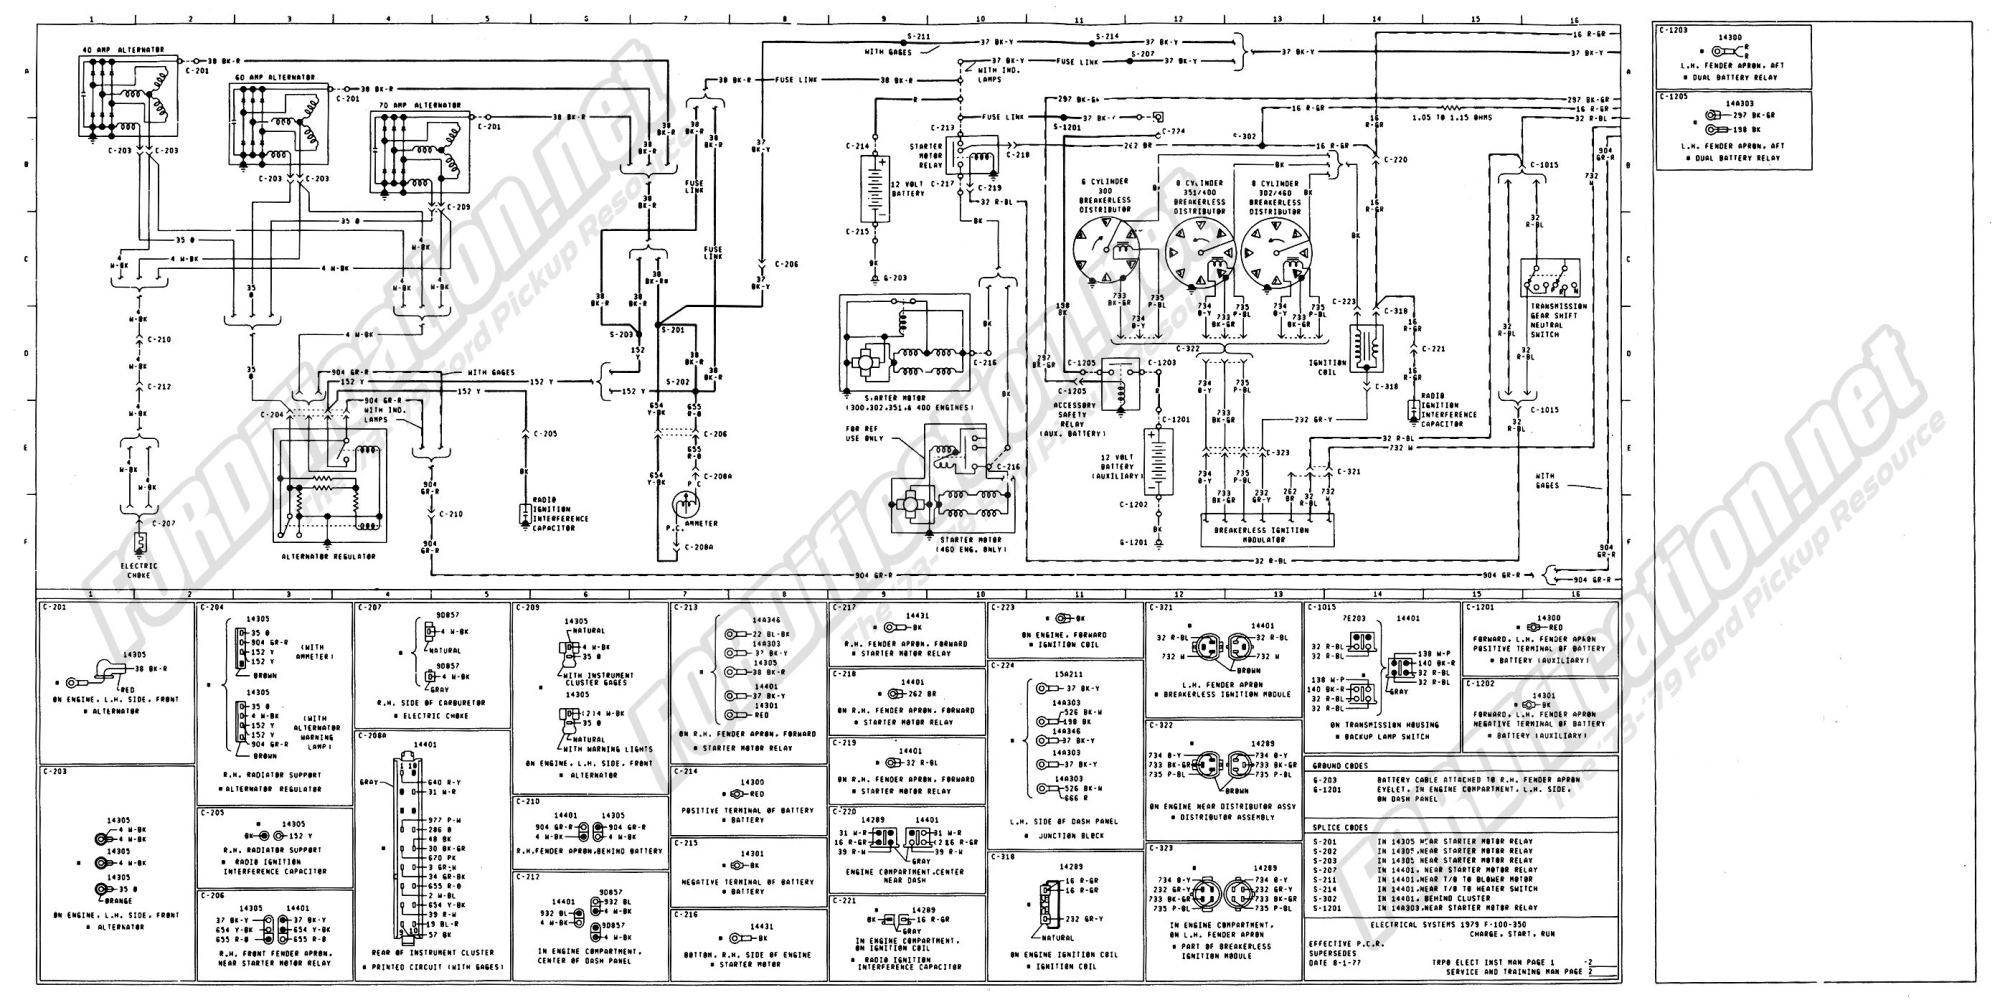 hight resolution of wiring diagram for 79 ford truck simple wiring diagram rh david huggett co uk